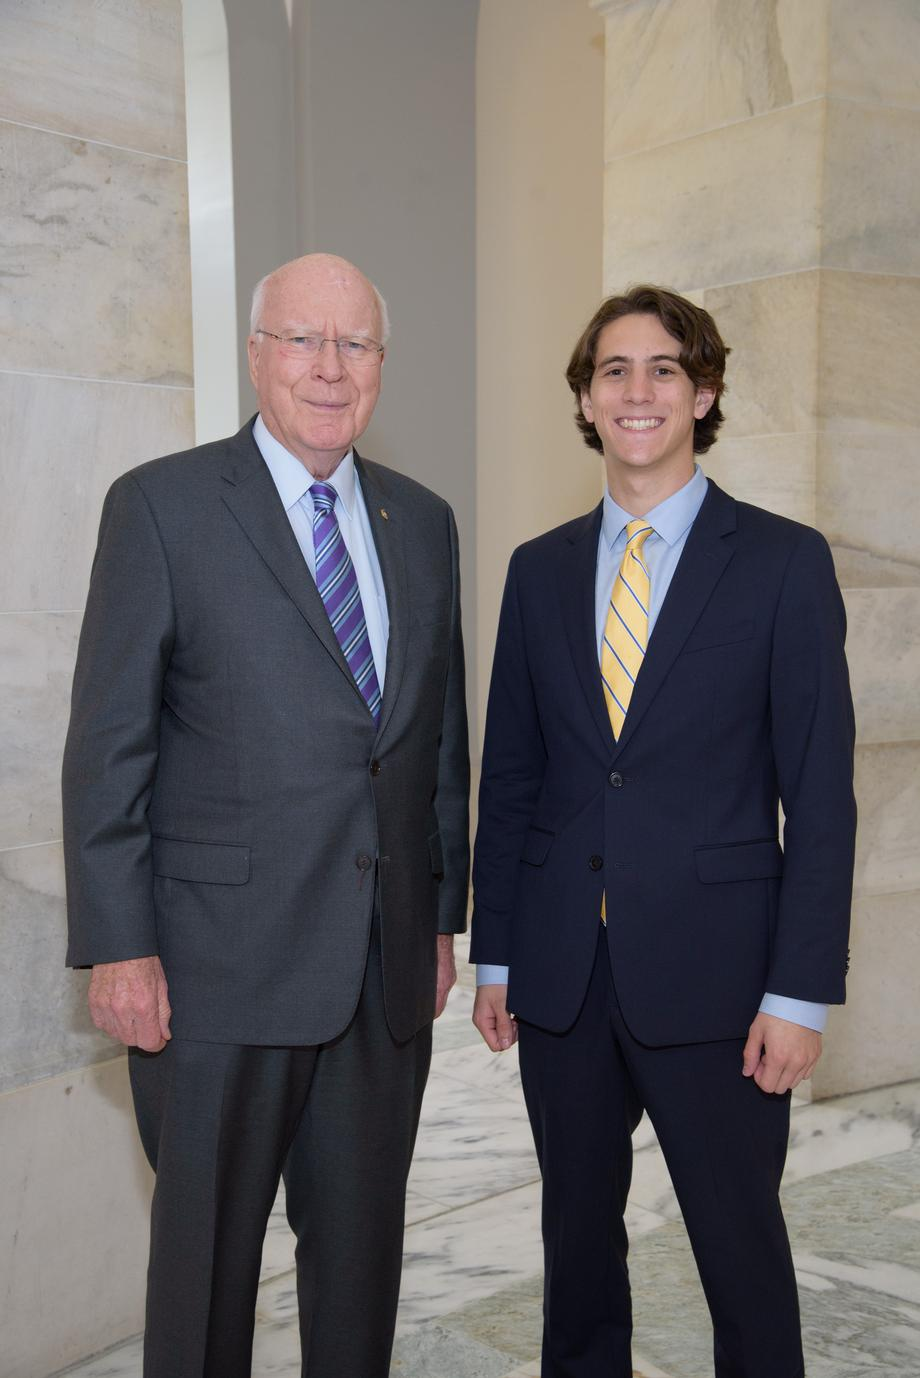 Senator Leahy, as part of his paid internship program, had a shadow day with his intern Jack.  Each <br>intern has a day where they shadow Senator Leahy to see, up close, exactly what goes into representing Vermont.